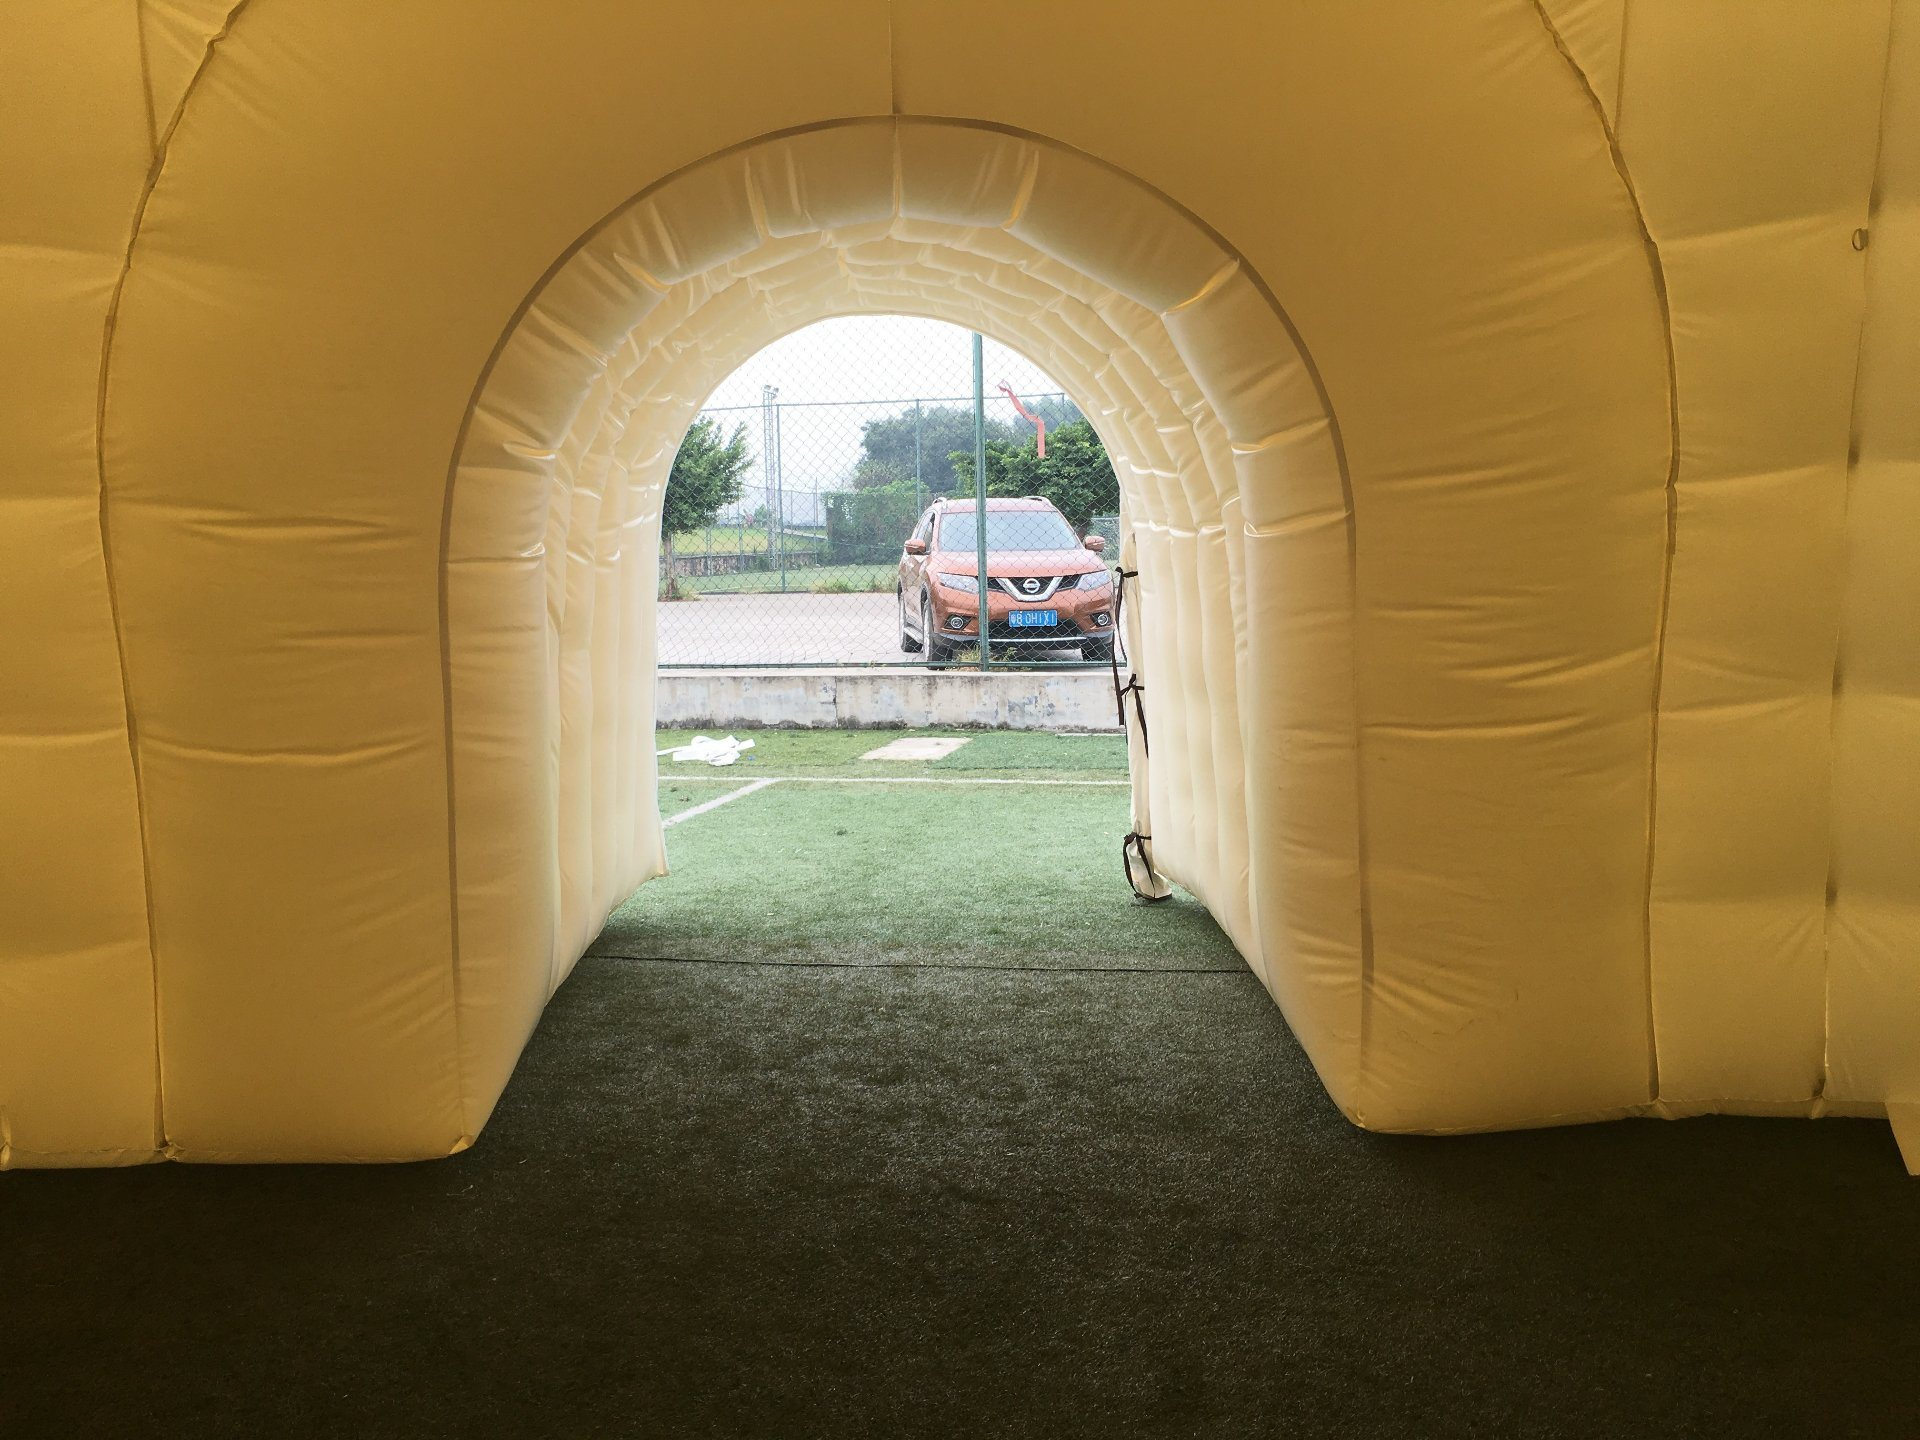 Outdoor Igloo Inflatable Dome Exhibition Tent